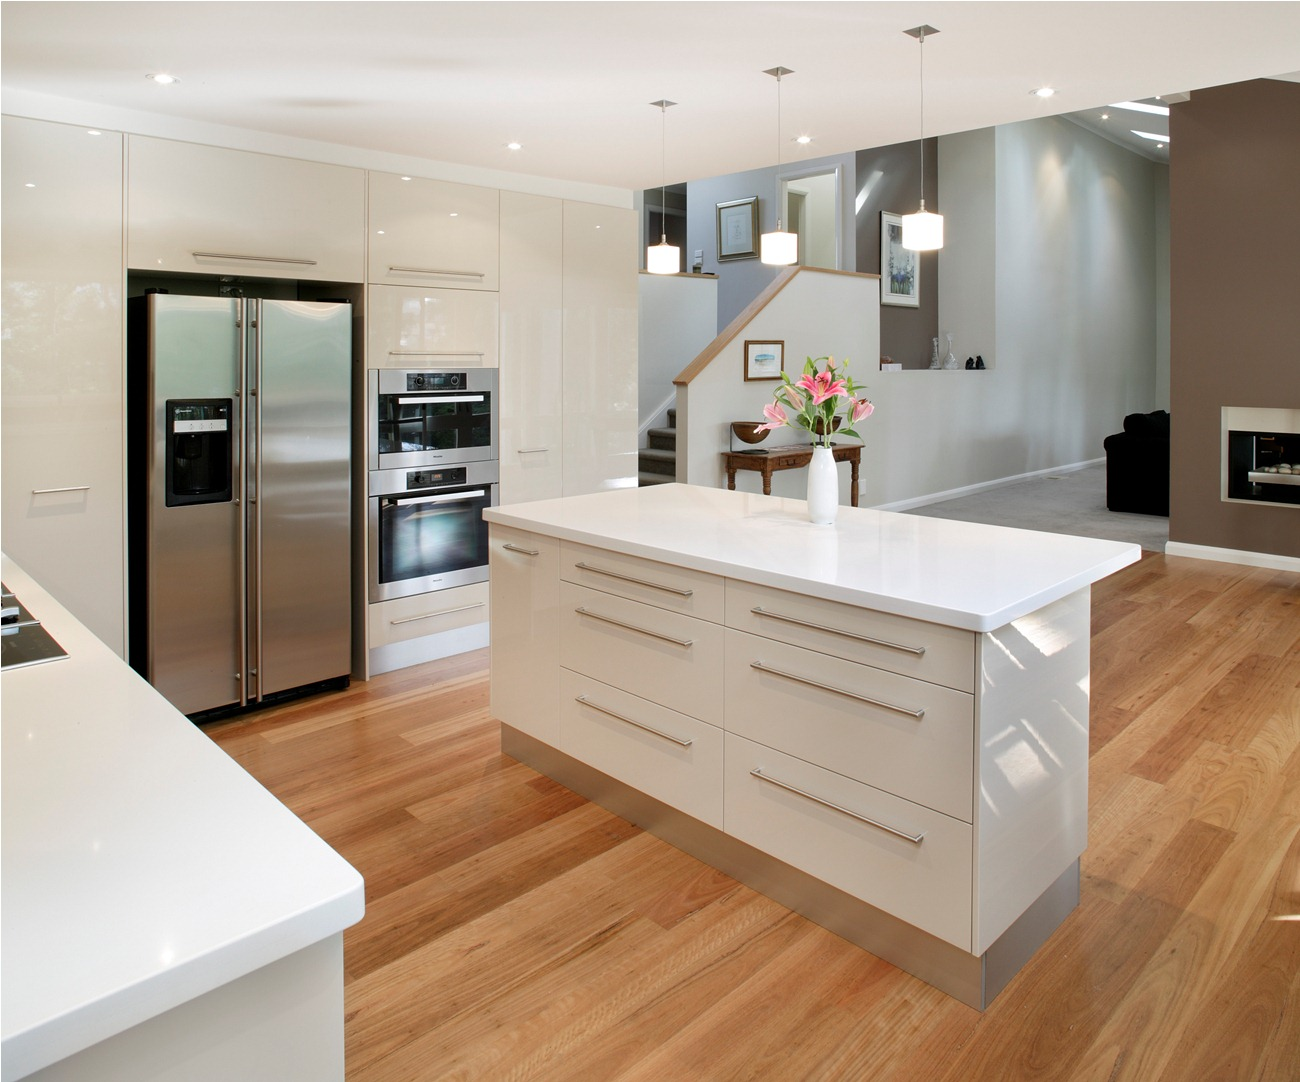 Beyond kitchens kitchen cupboards cape town prices for Kitchenette designs photos